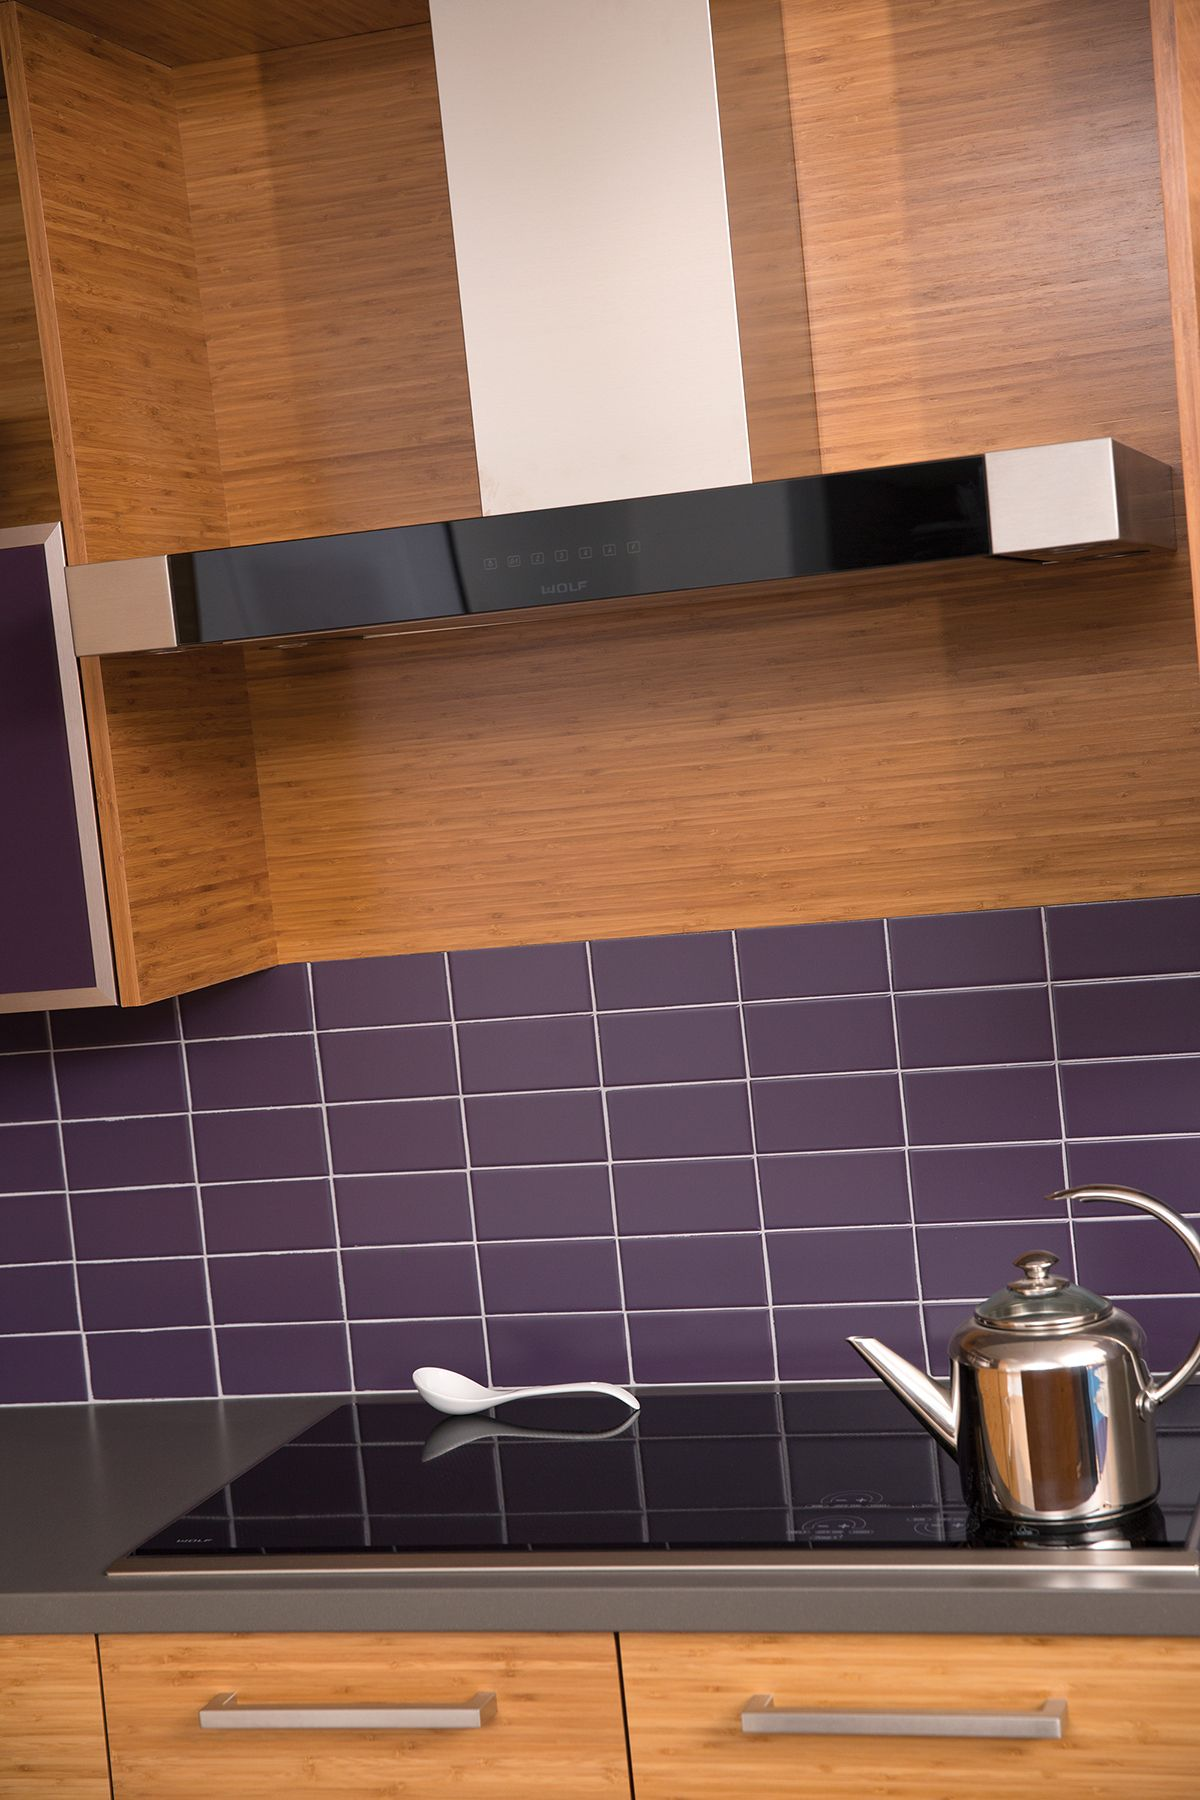 Bamboo Backsplash Contemporary Kitchen Stovetop With Dura Supreme Bamboo